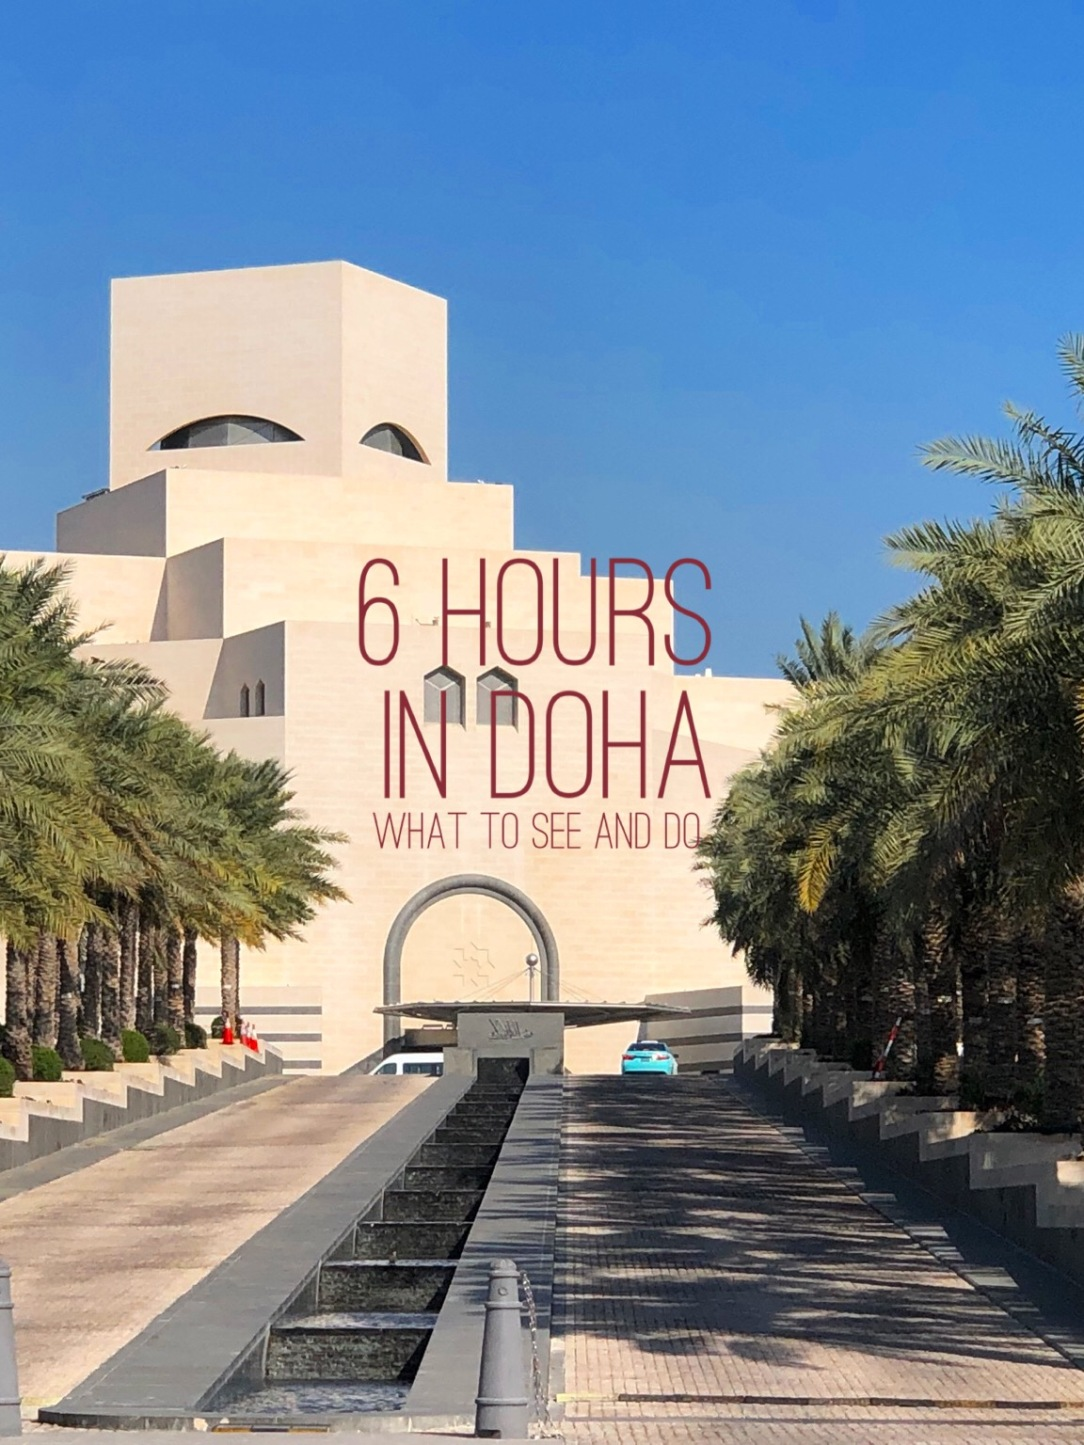 What to do for 6 hours in Doha - What to see and do